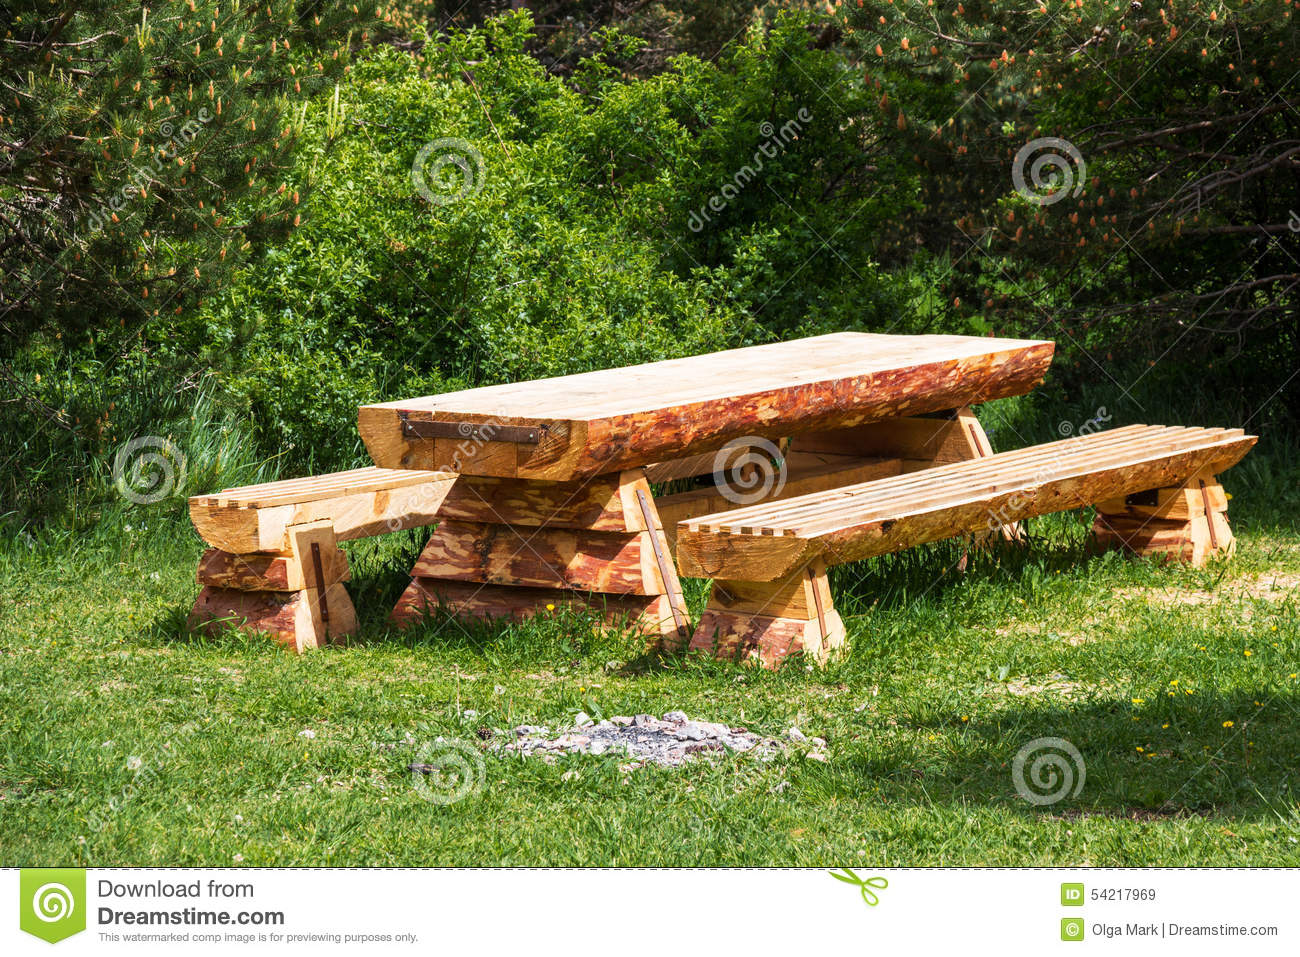 Pleasant Wooden Table With Benches In A Pine Forest Stock Image Gmtry Best Dining Table And Chair Ideas Images Gmtryco